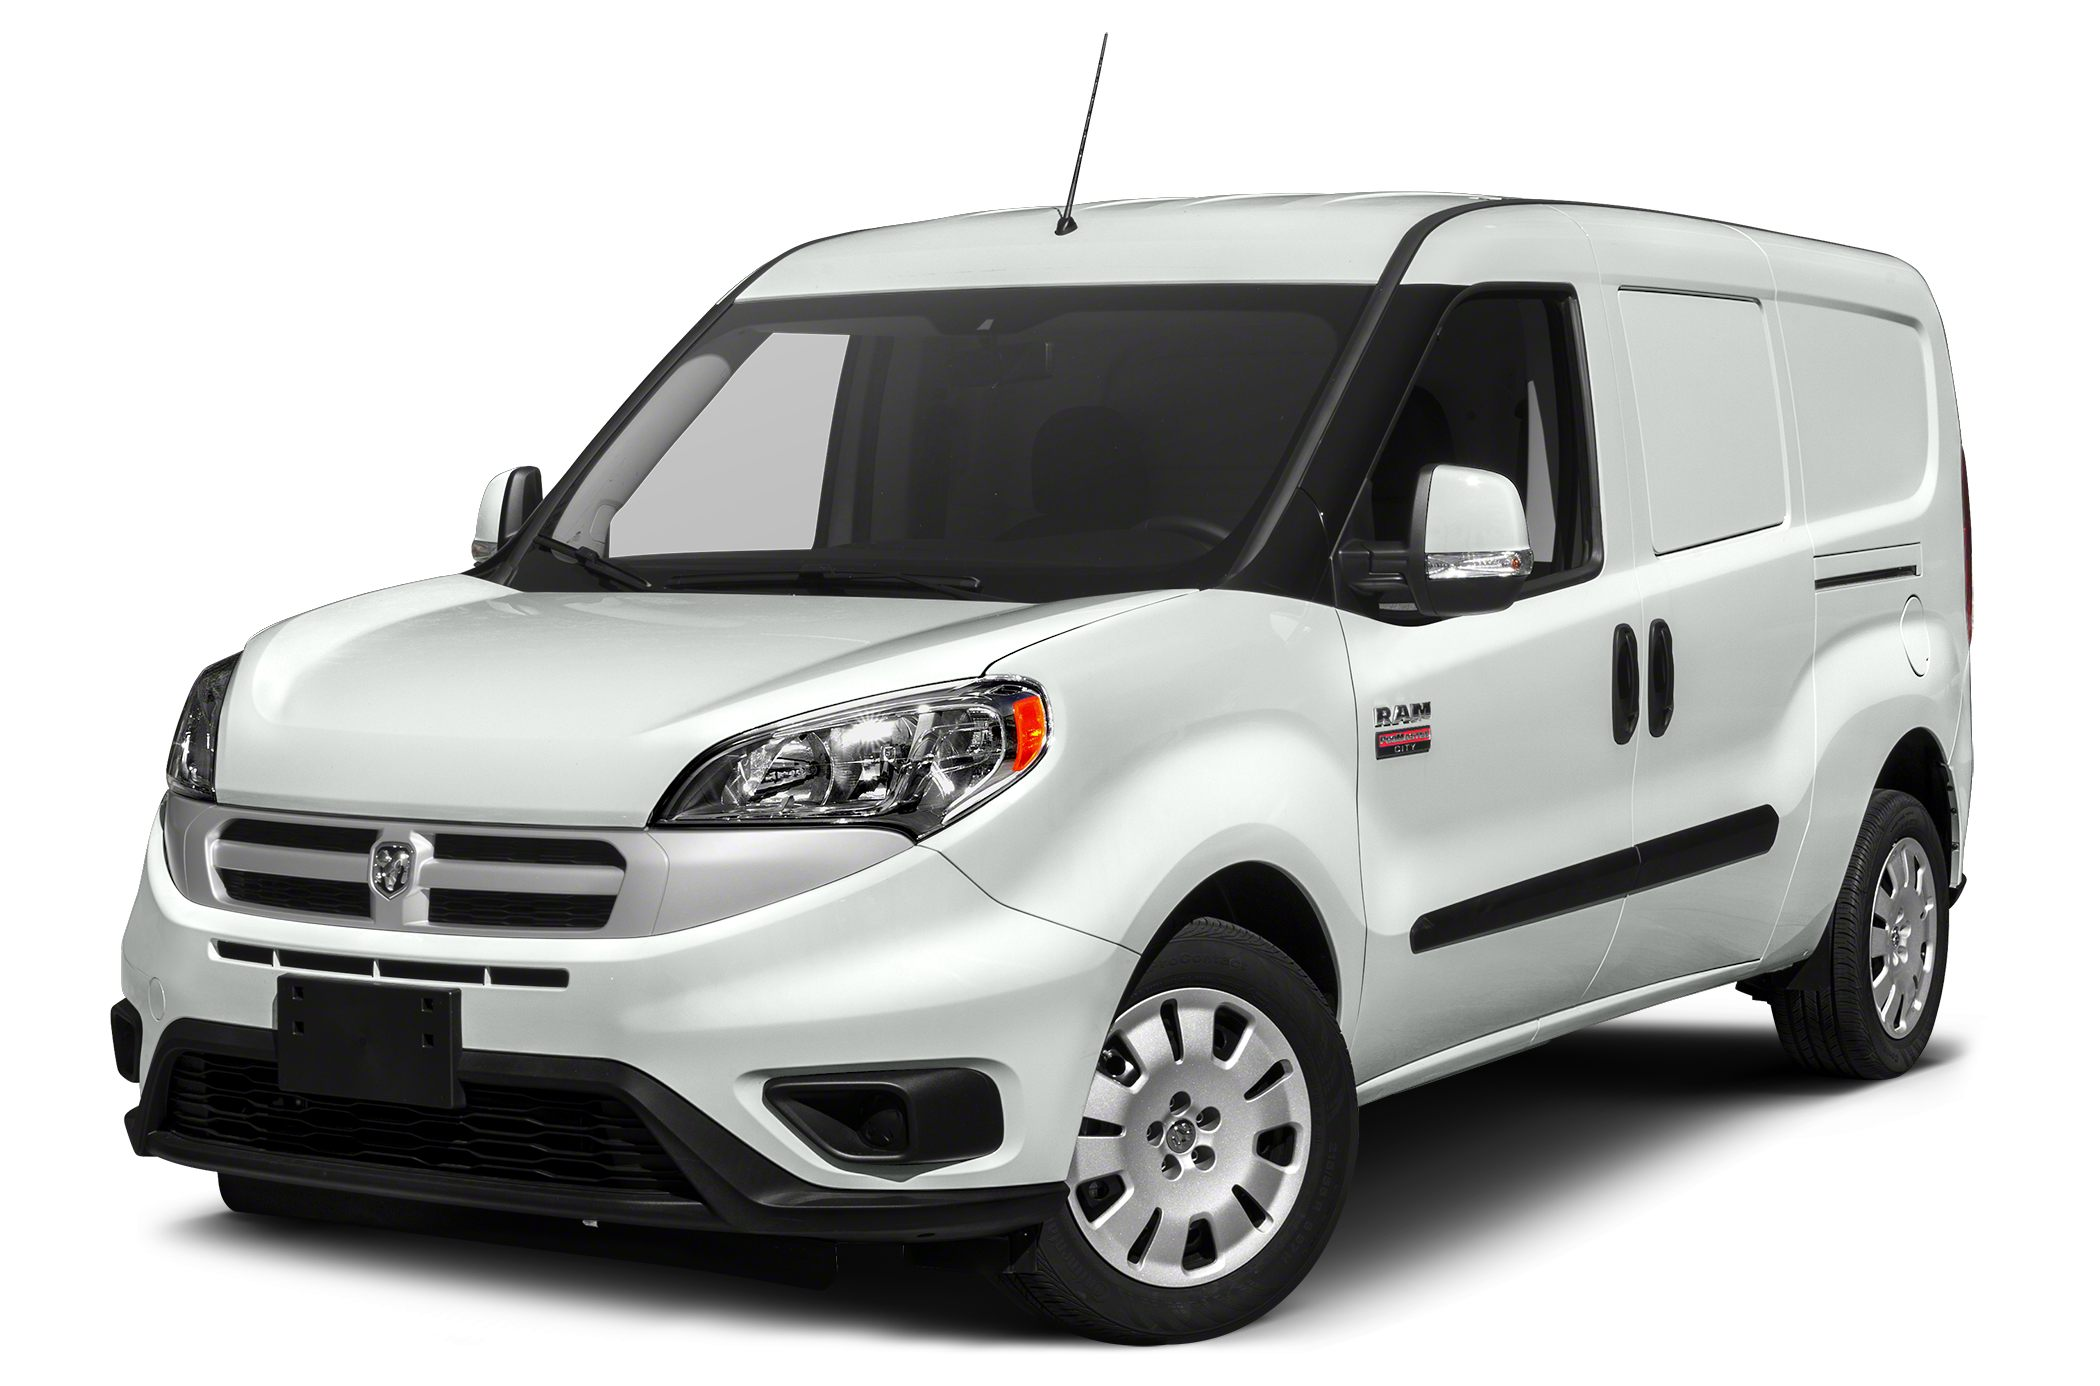 2015 ram promaster city tradesman first drive w video autoblog. Black Bedroom Furniture Sets. Home Design Ideas